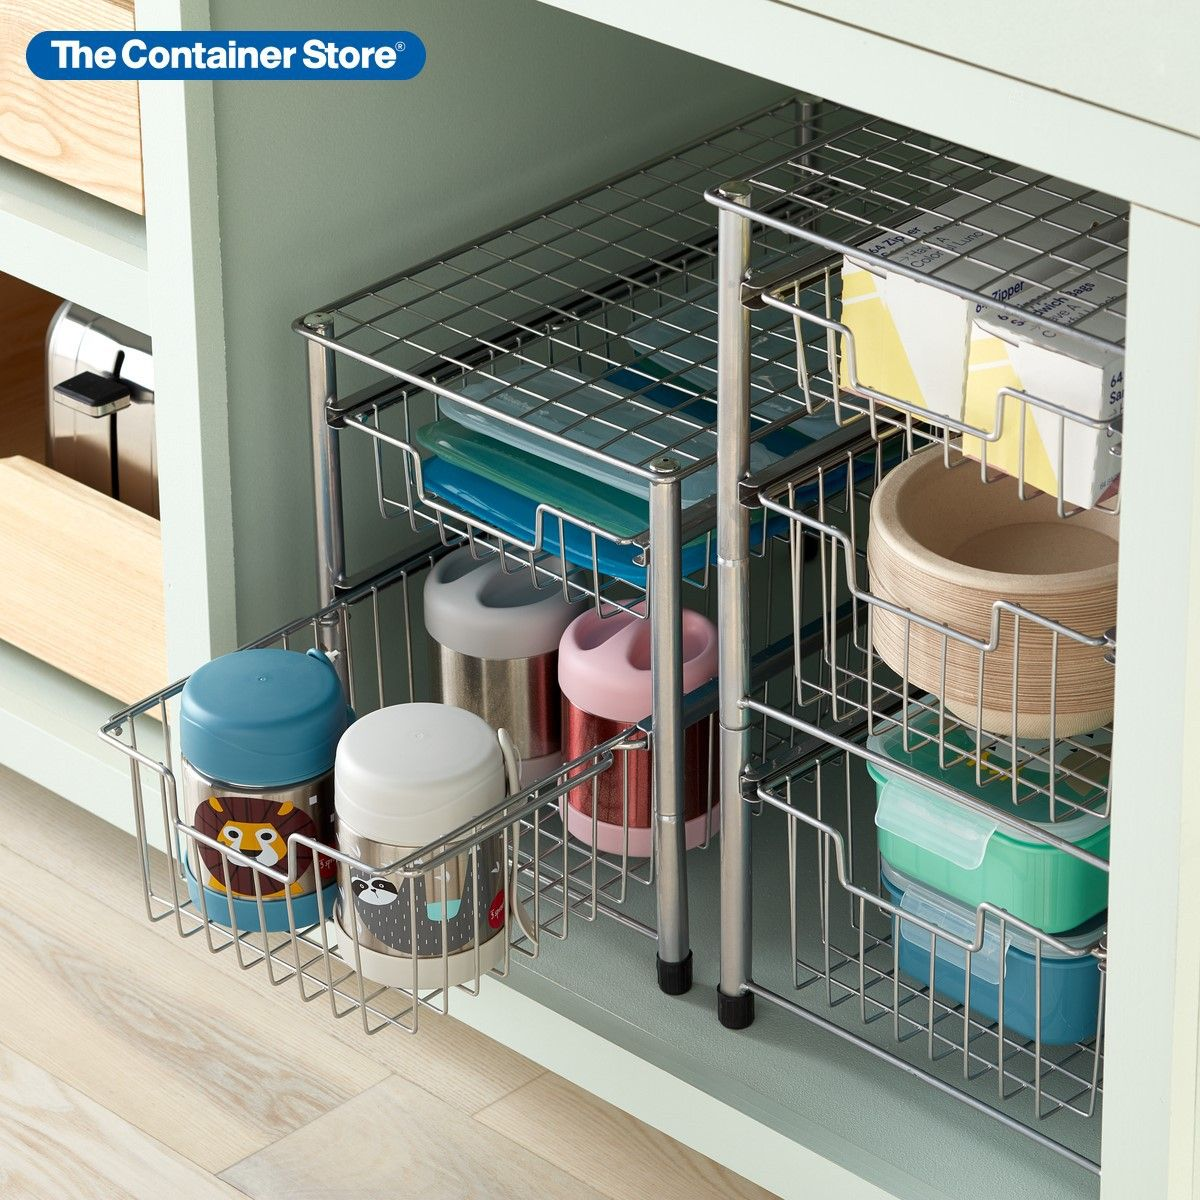 Wire Pull Out Cabinet Organizers In 2021 Cabinets Organization Storage Spaces Cabinet